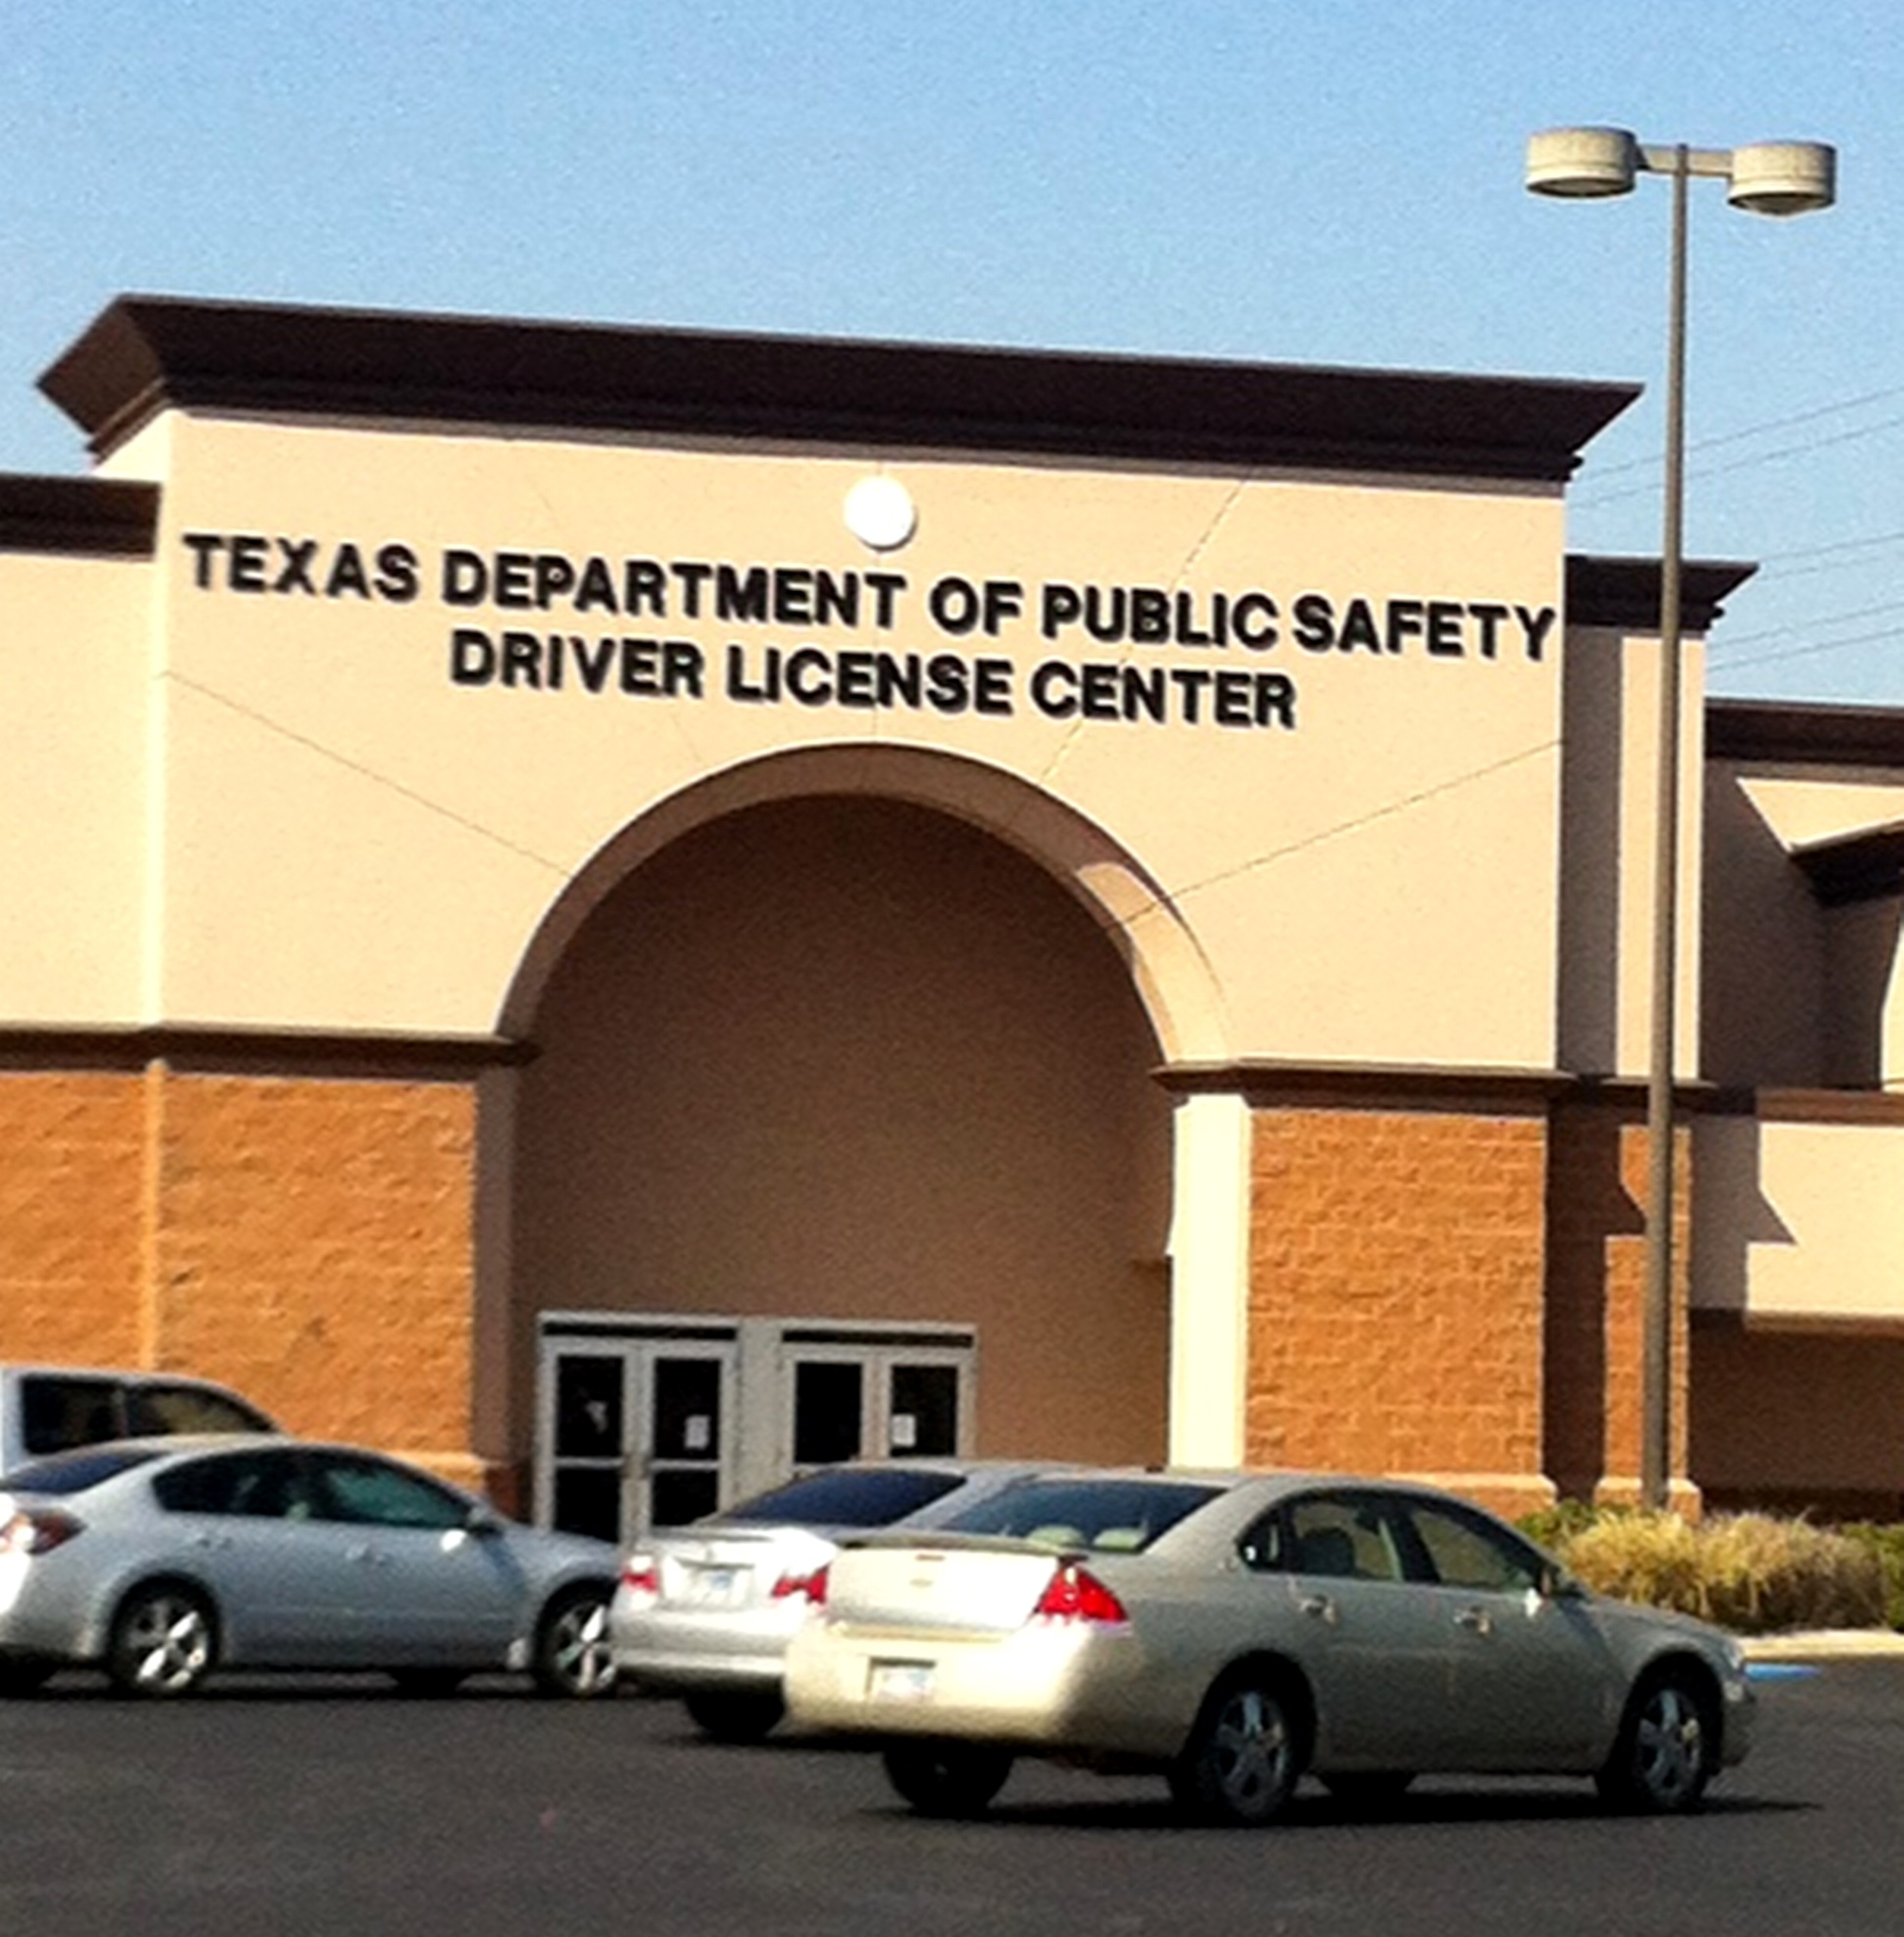 Driver license megacenter to open in Spring